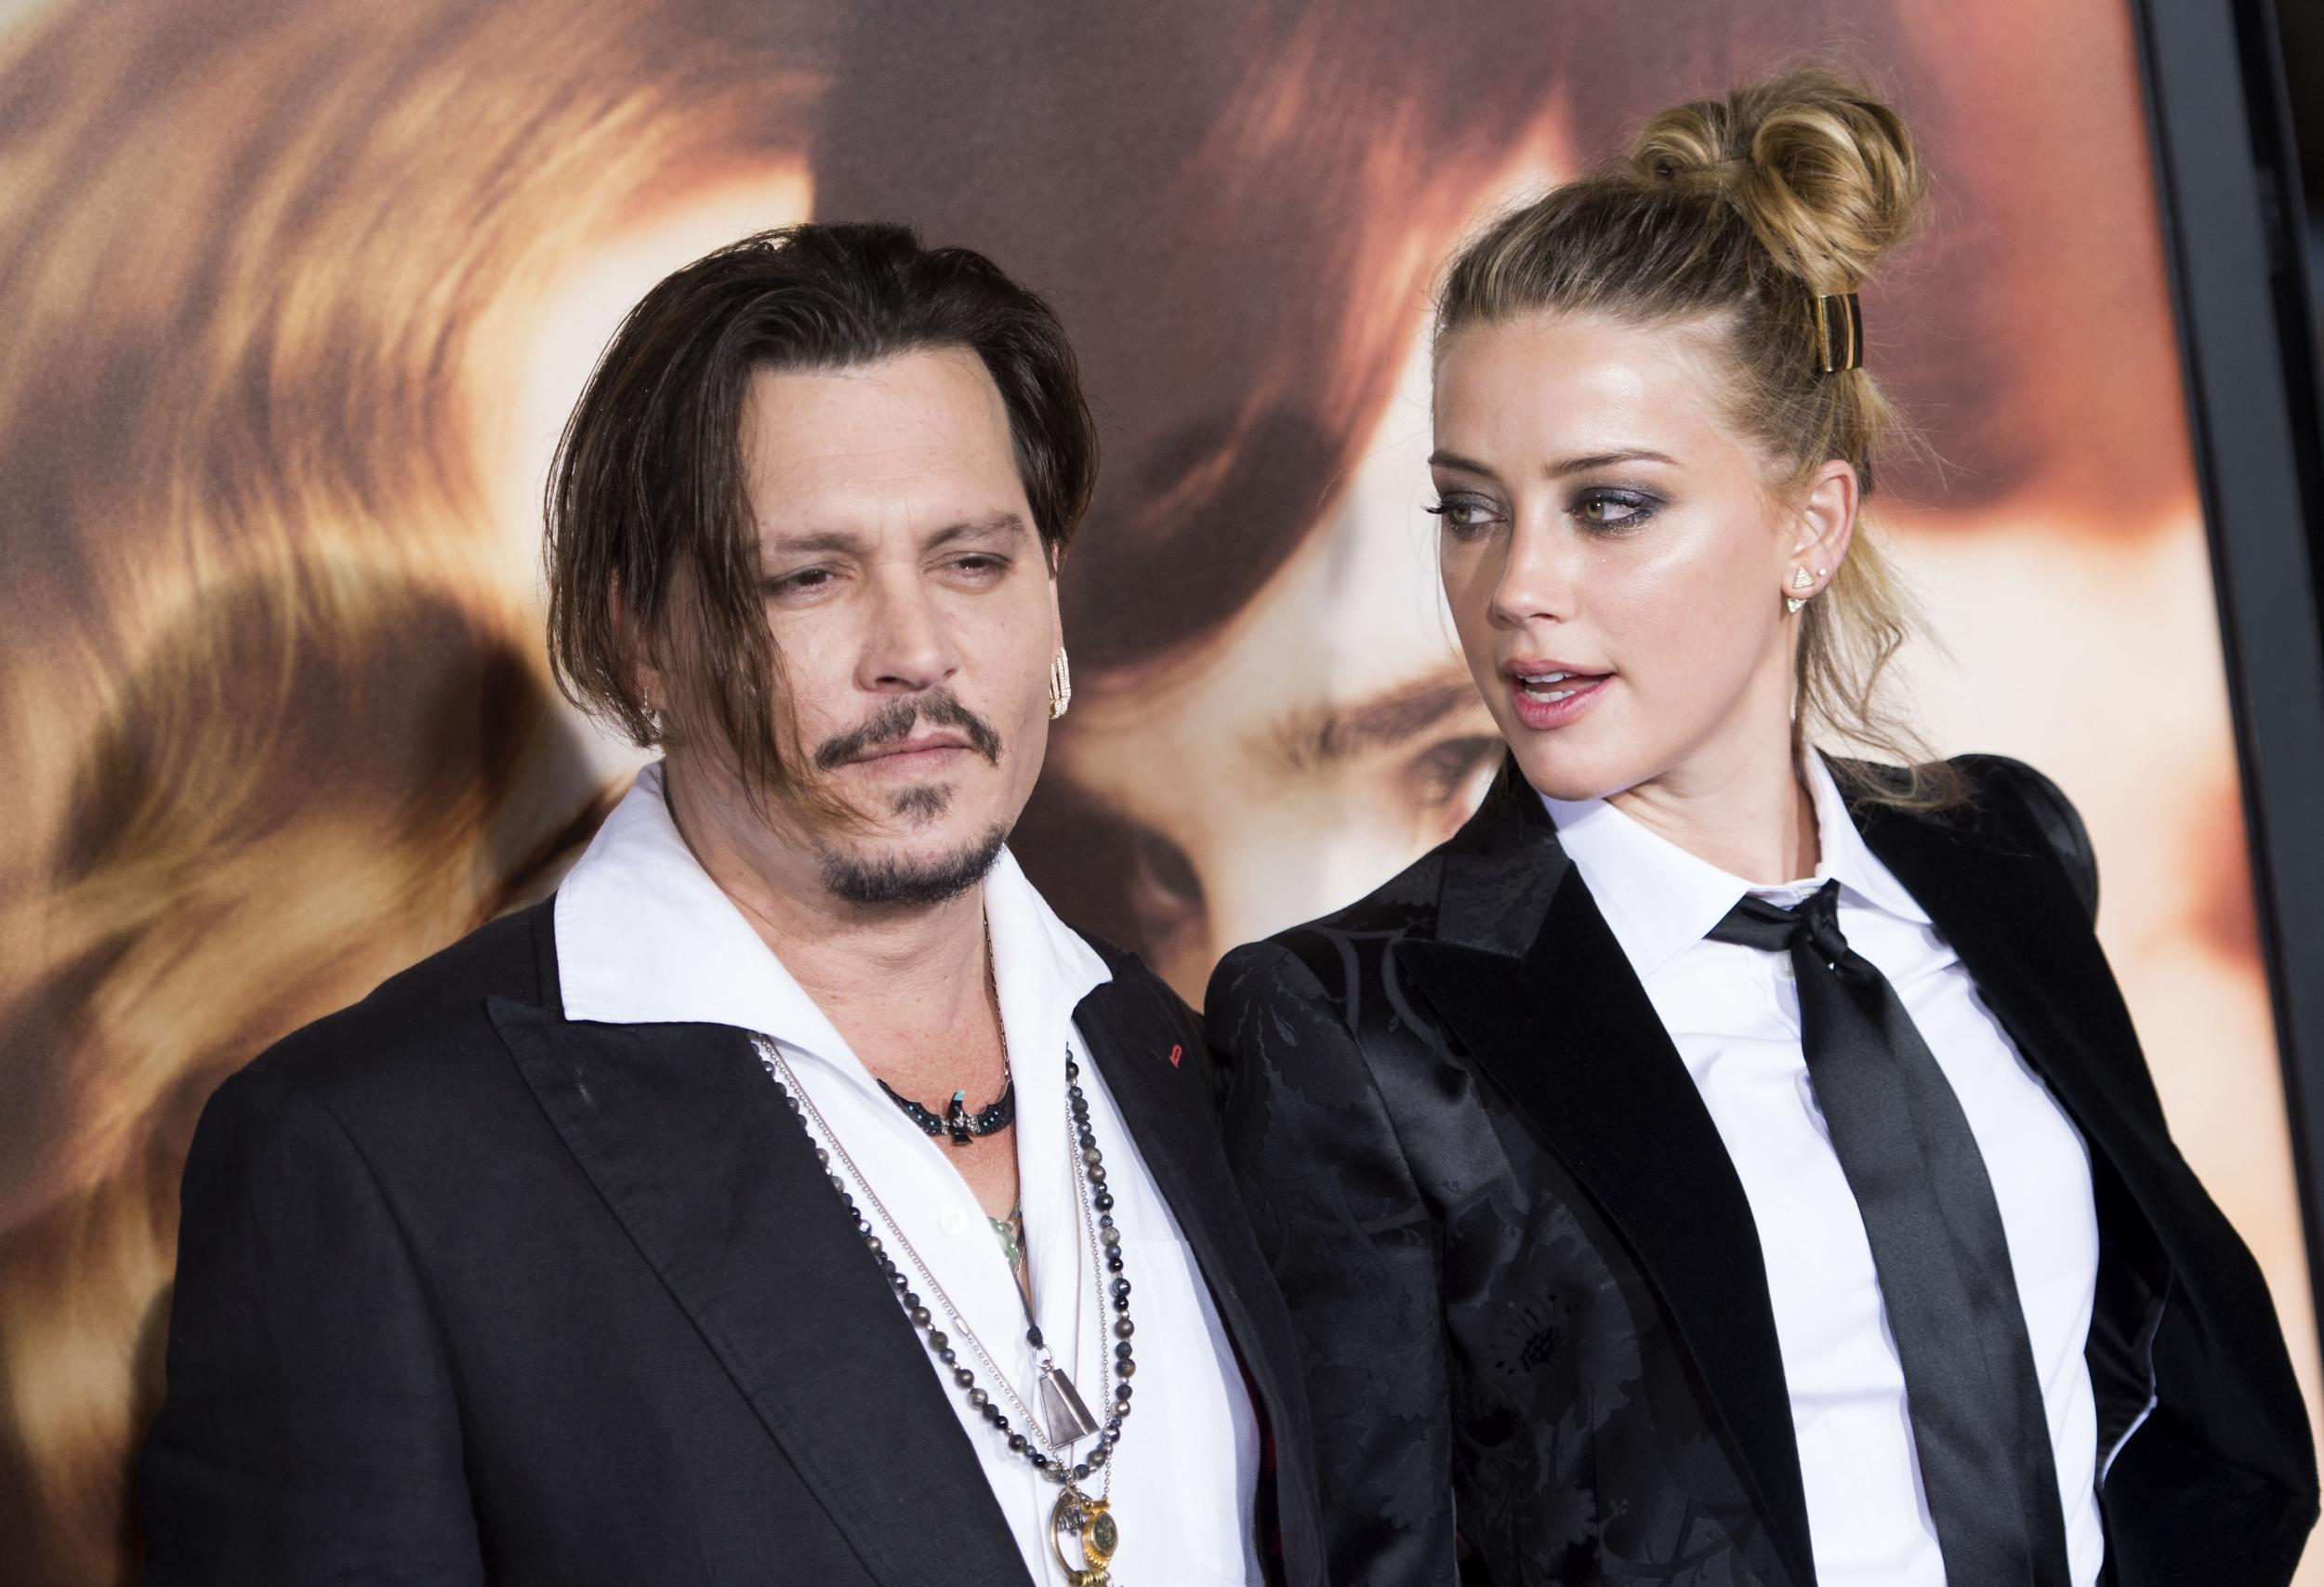 johnny depp was victim of abuser amber heard lawyers say